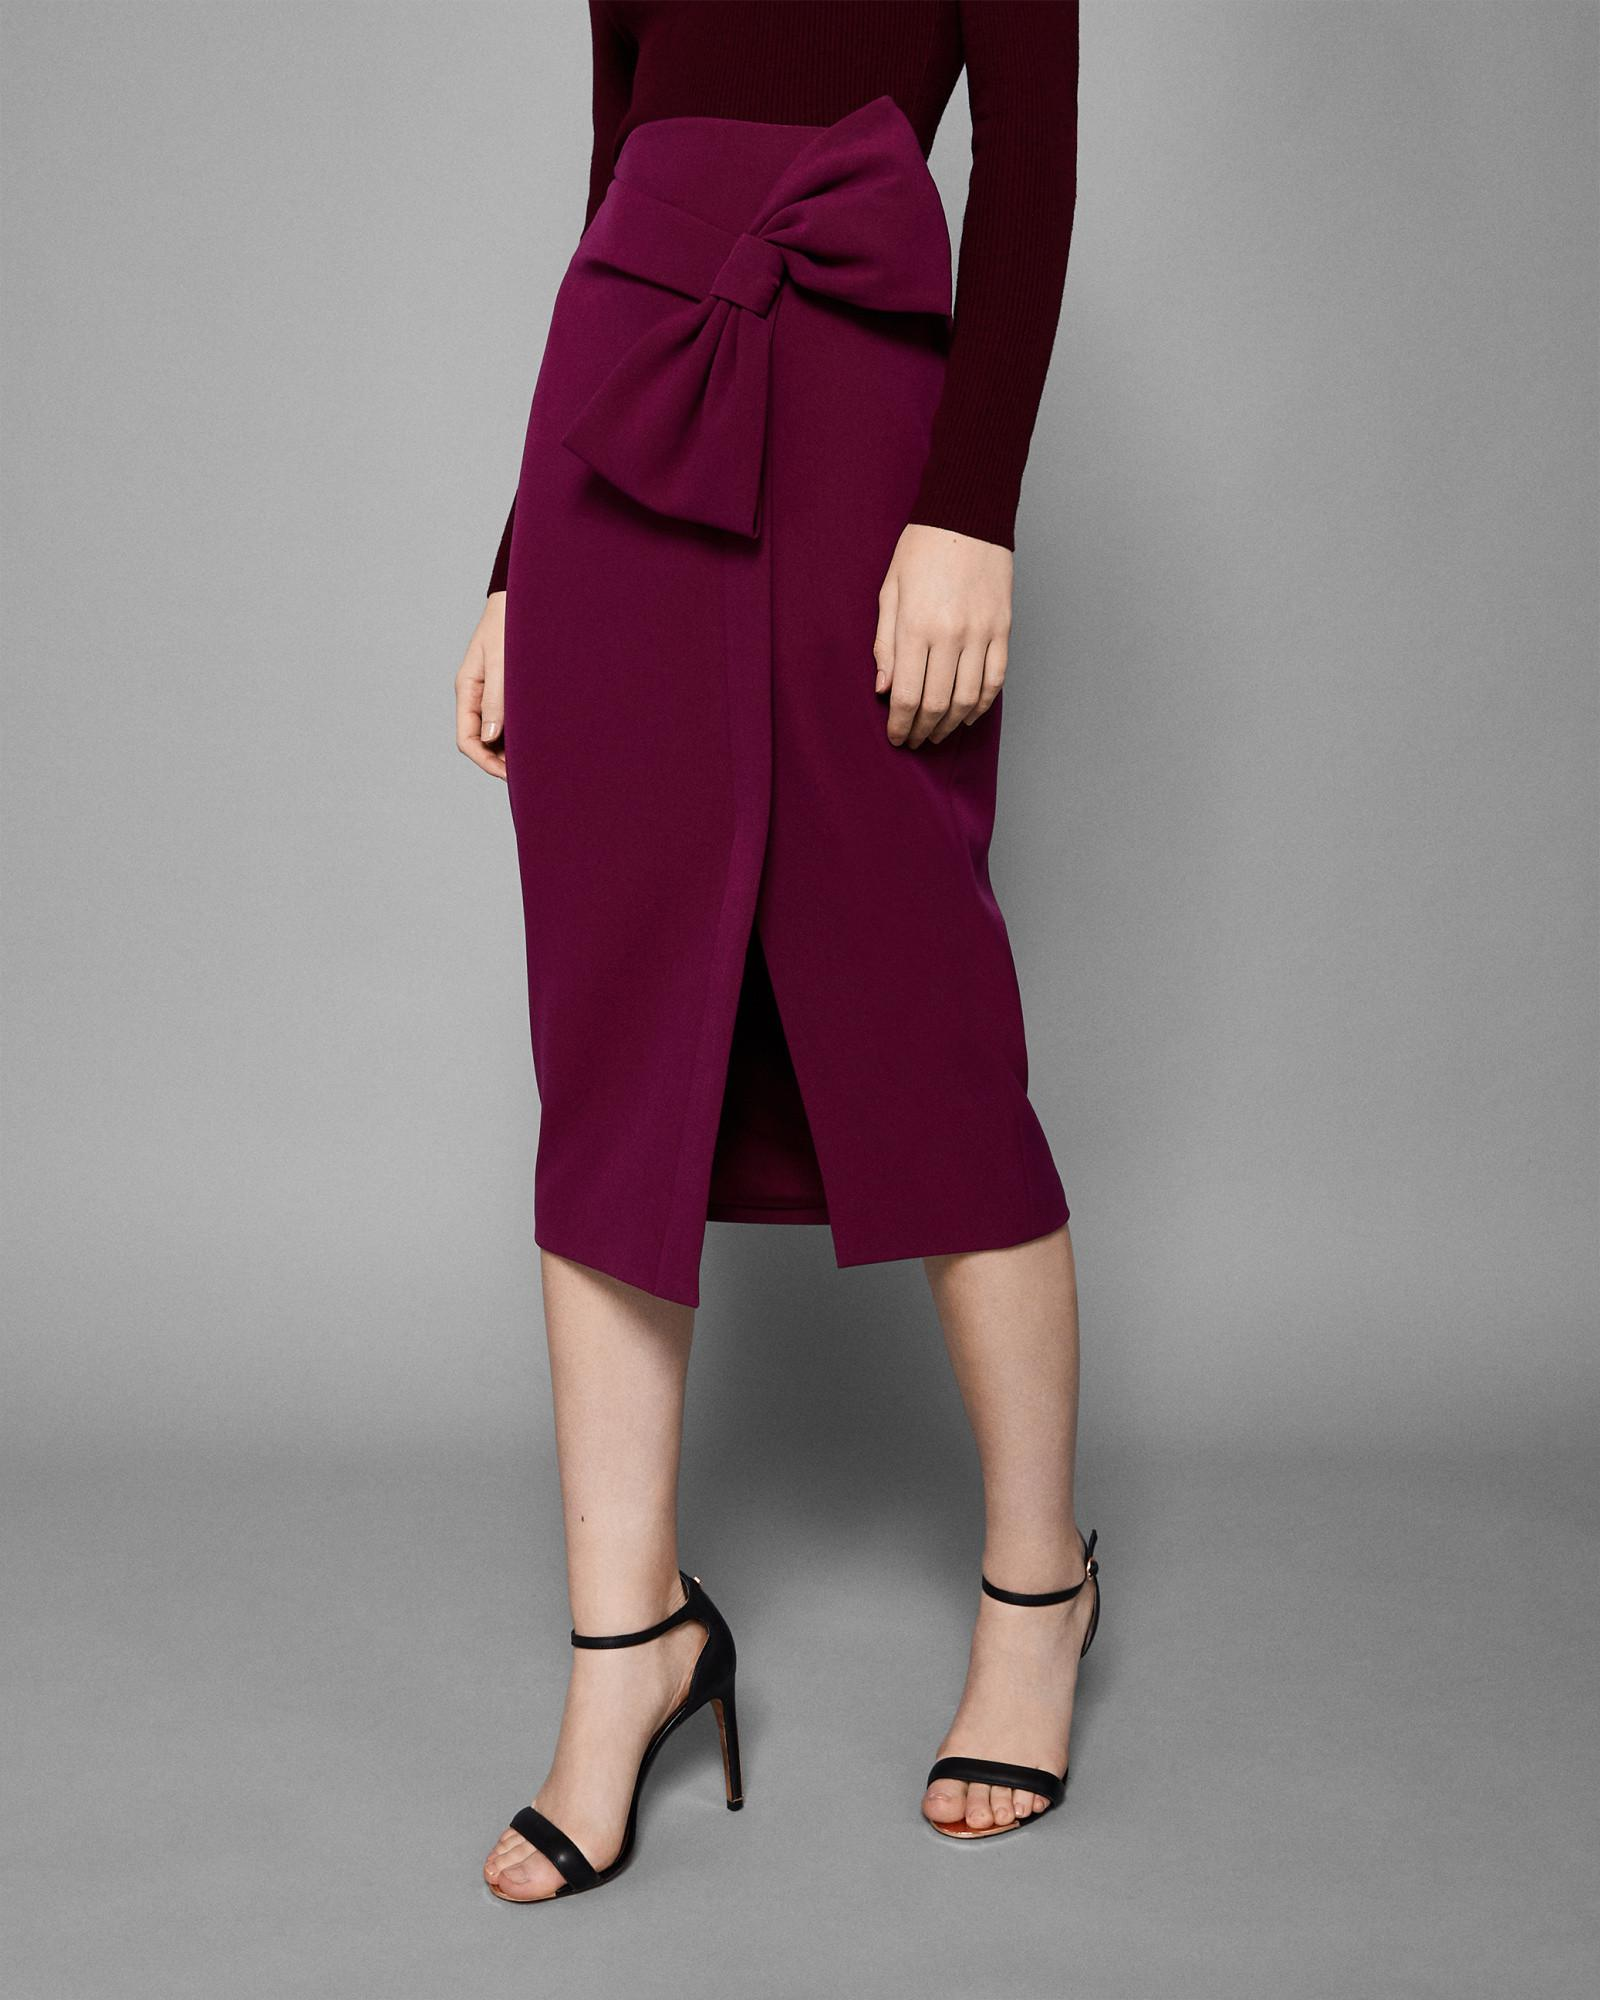 802807f9abade6 Lyst - Ted Baker Bow Trim Pencil Skirt in Purple